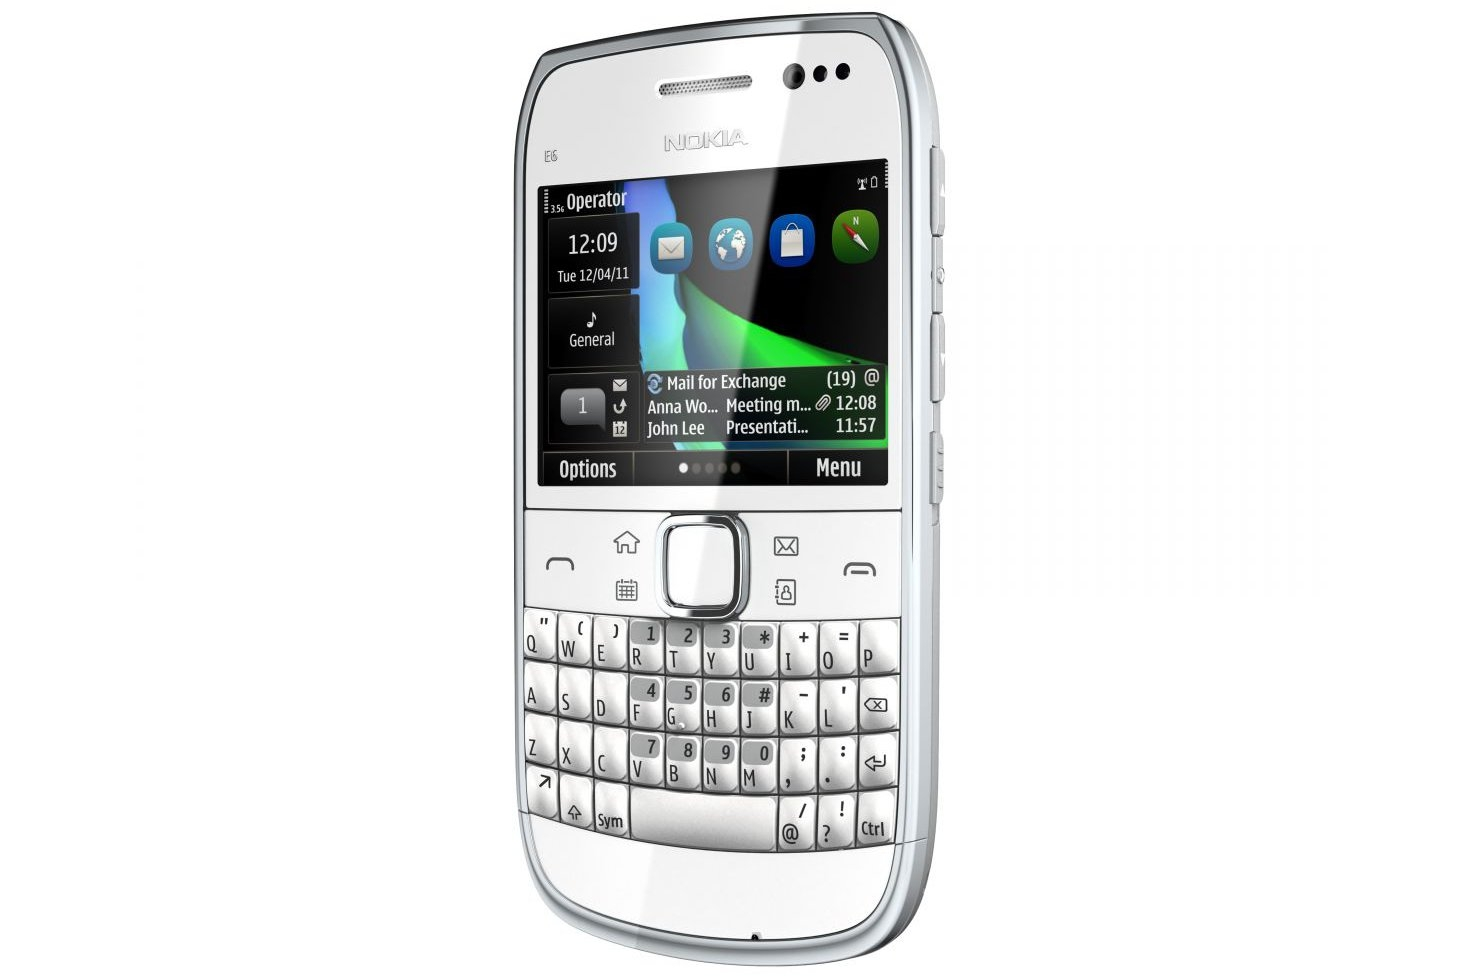 You are here home mobiles devices symbian anna update 25 7 -  Nokia Phone That Possesses Excellent Hardware But Let Down By Software That Just Isn T As Slick Fast Or User Friendly As Competitors Mobile Phones